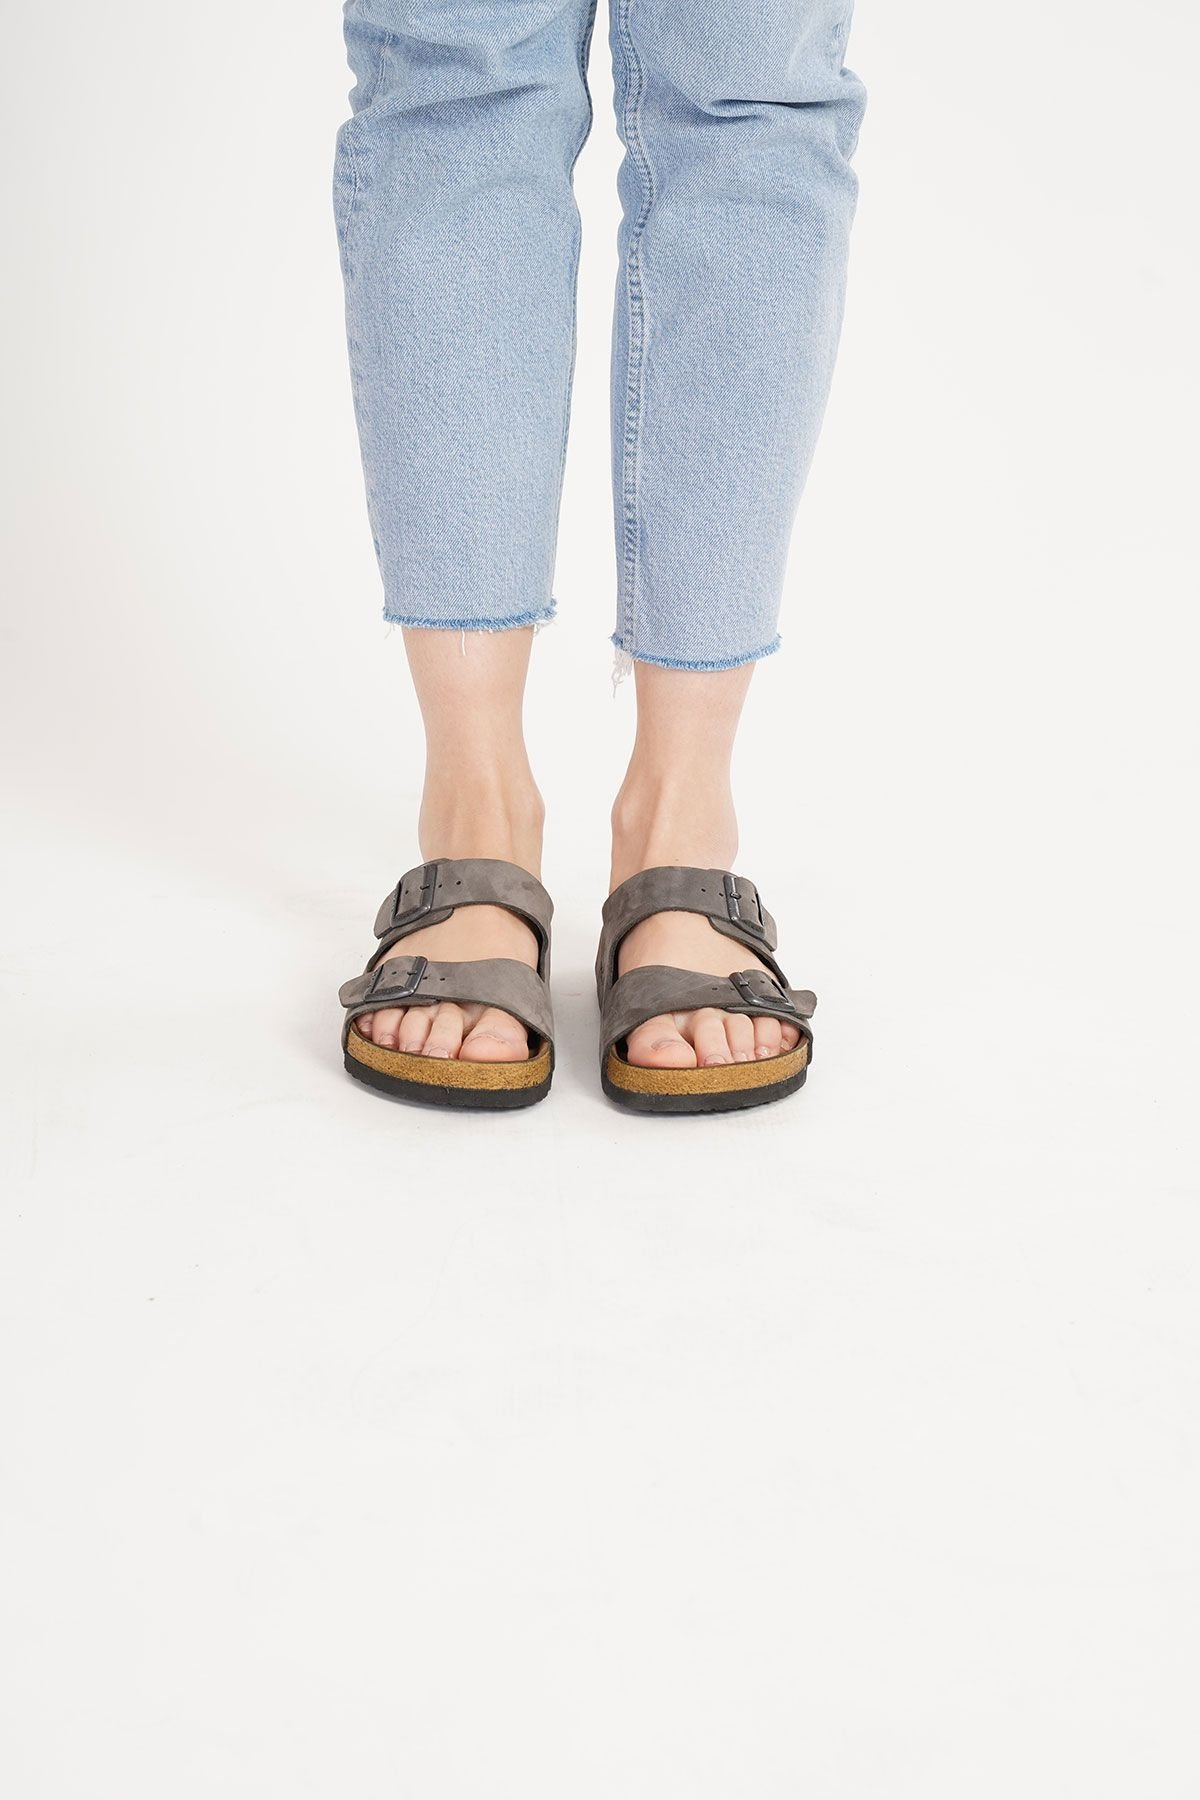 Pegia Women's Leather Strap Slippers 215520 Gray